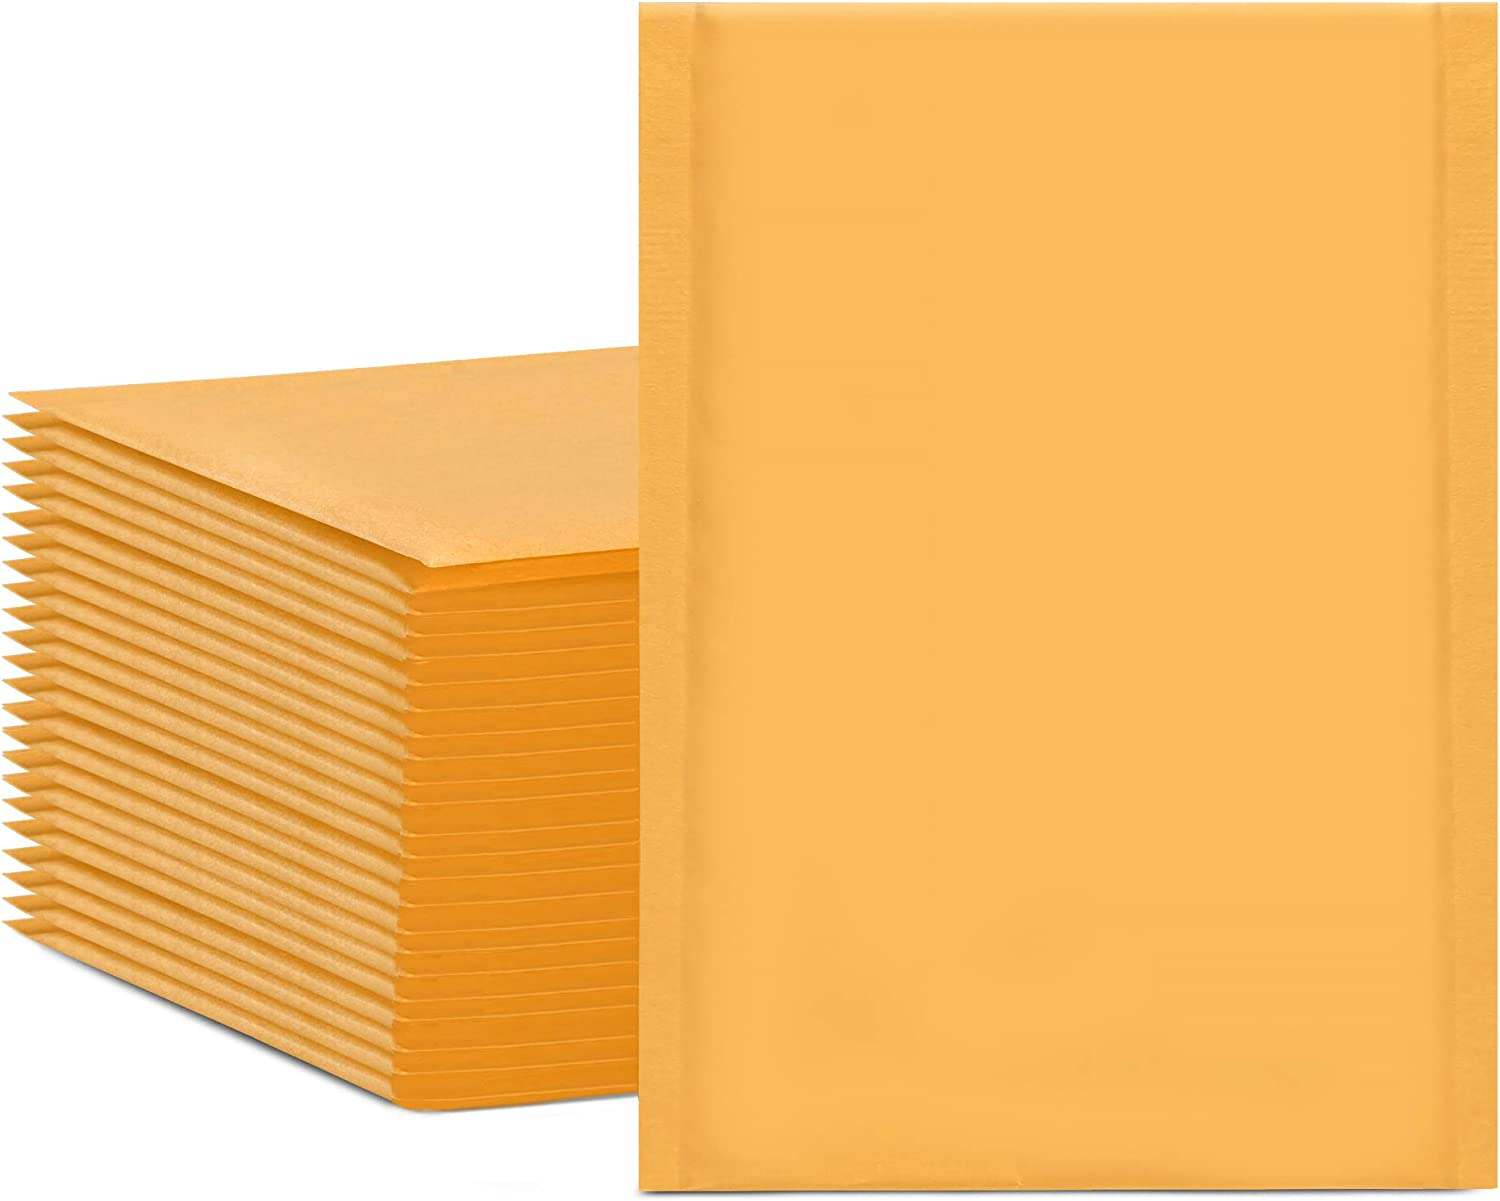 HBlife 6x10 Inches Kraft Bubble Mailers Self Seal Padded Envelopes, Pack of 50